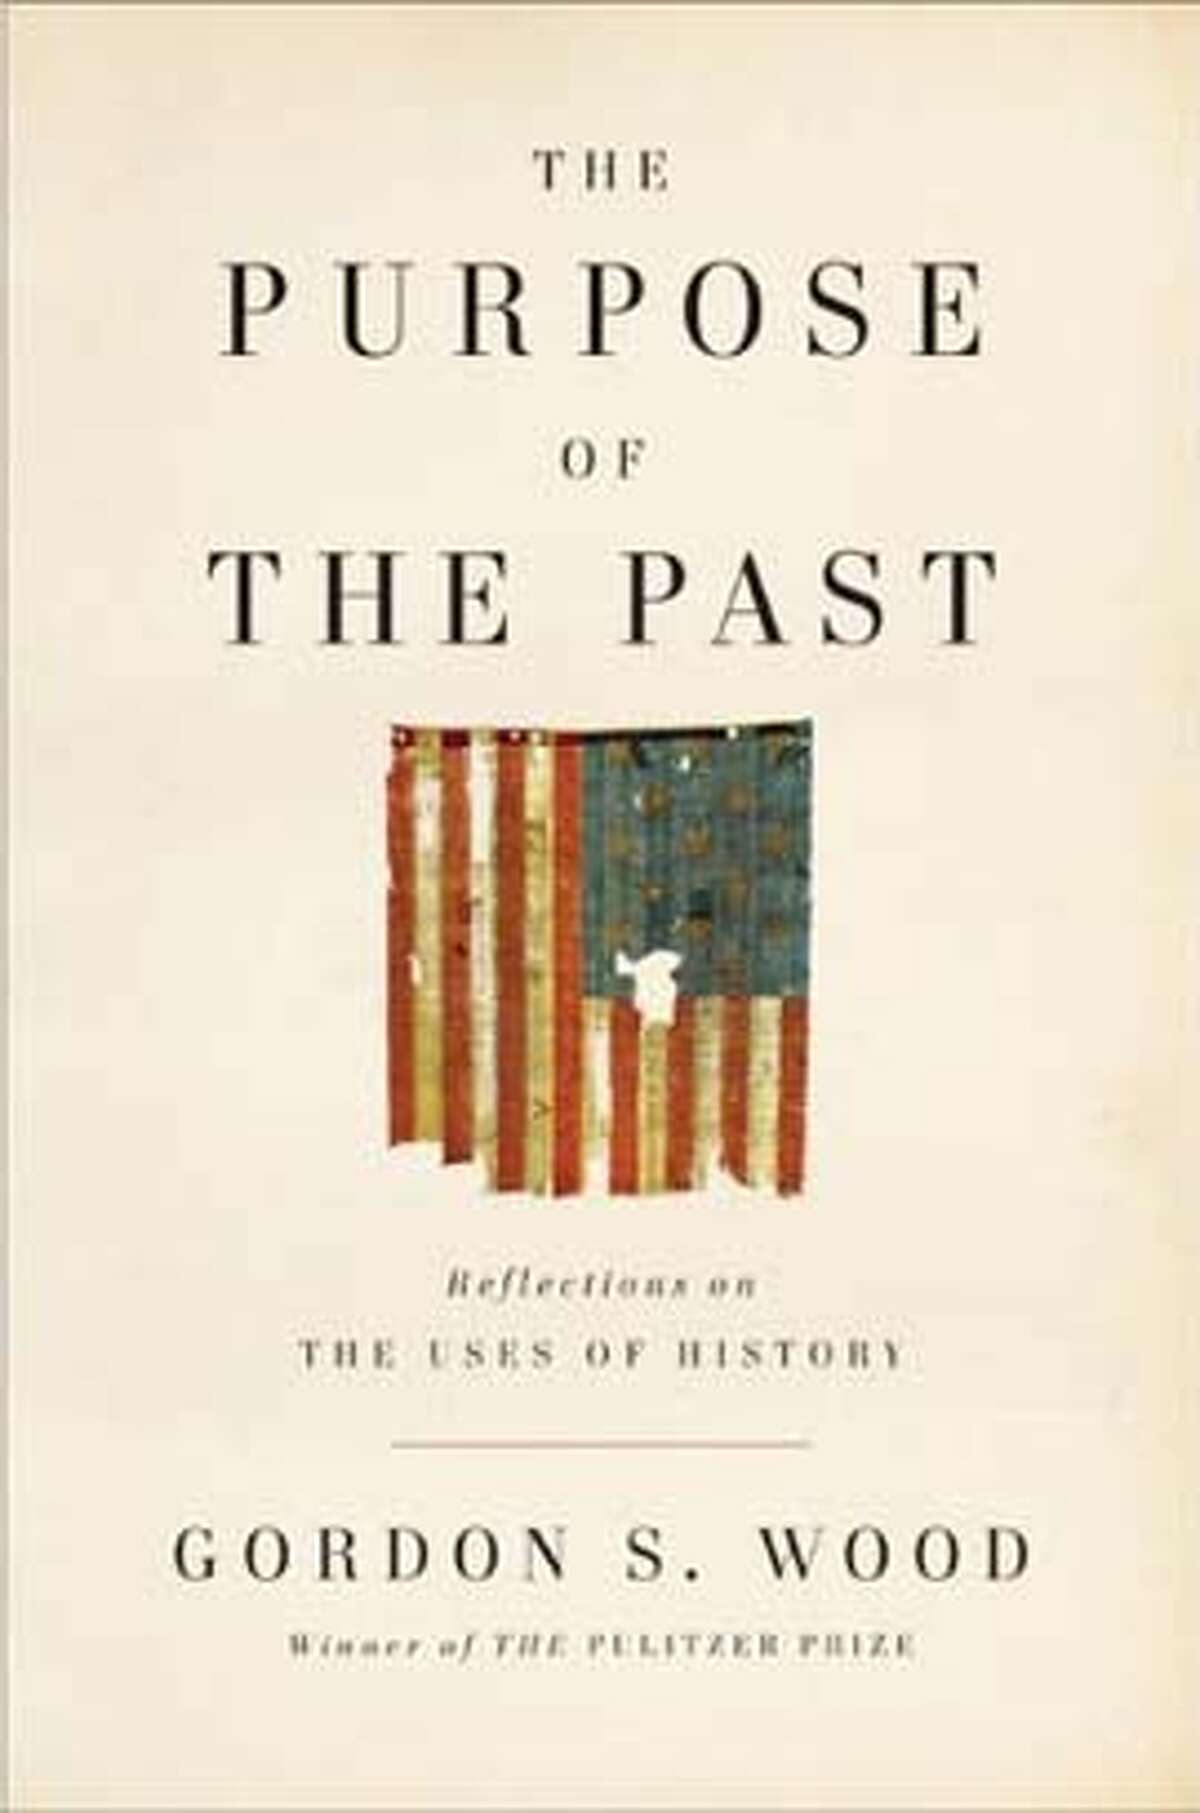 ###Live Caption:The Purpose of the Past: Reflections on the Uses of History (Hardcover) by Gordon S. Wood (Author)###Caption History:The Purpose of the Past: Reflections on the Uses of History (Hardcover) by Gordon S. Wood (Author)###Notes:###Special Instructions: